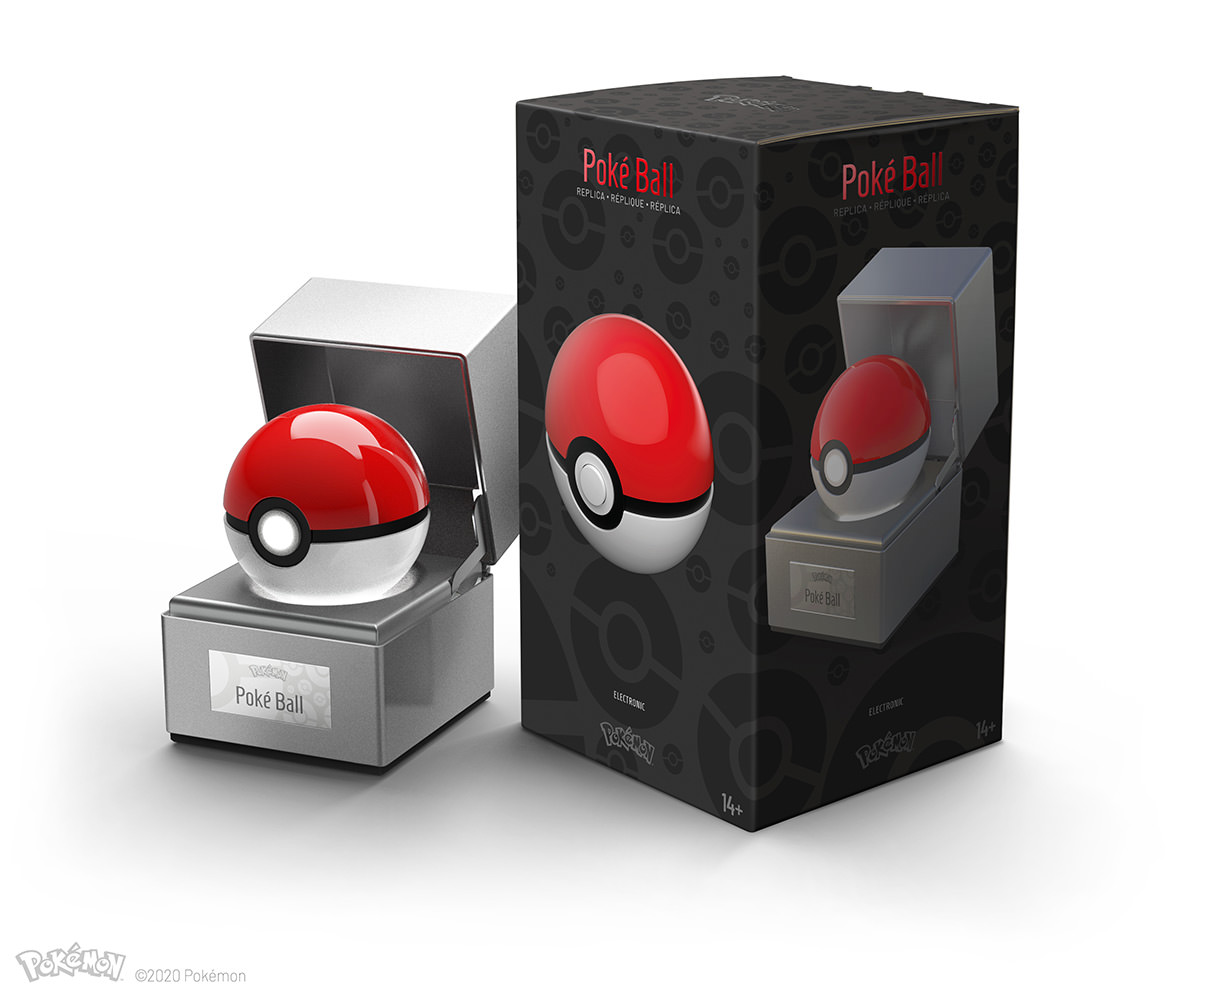 Poké Ball The Wand Company Promo Replica with Box